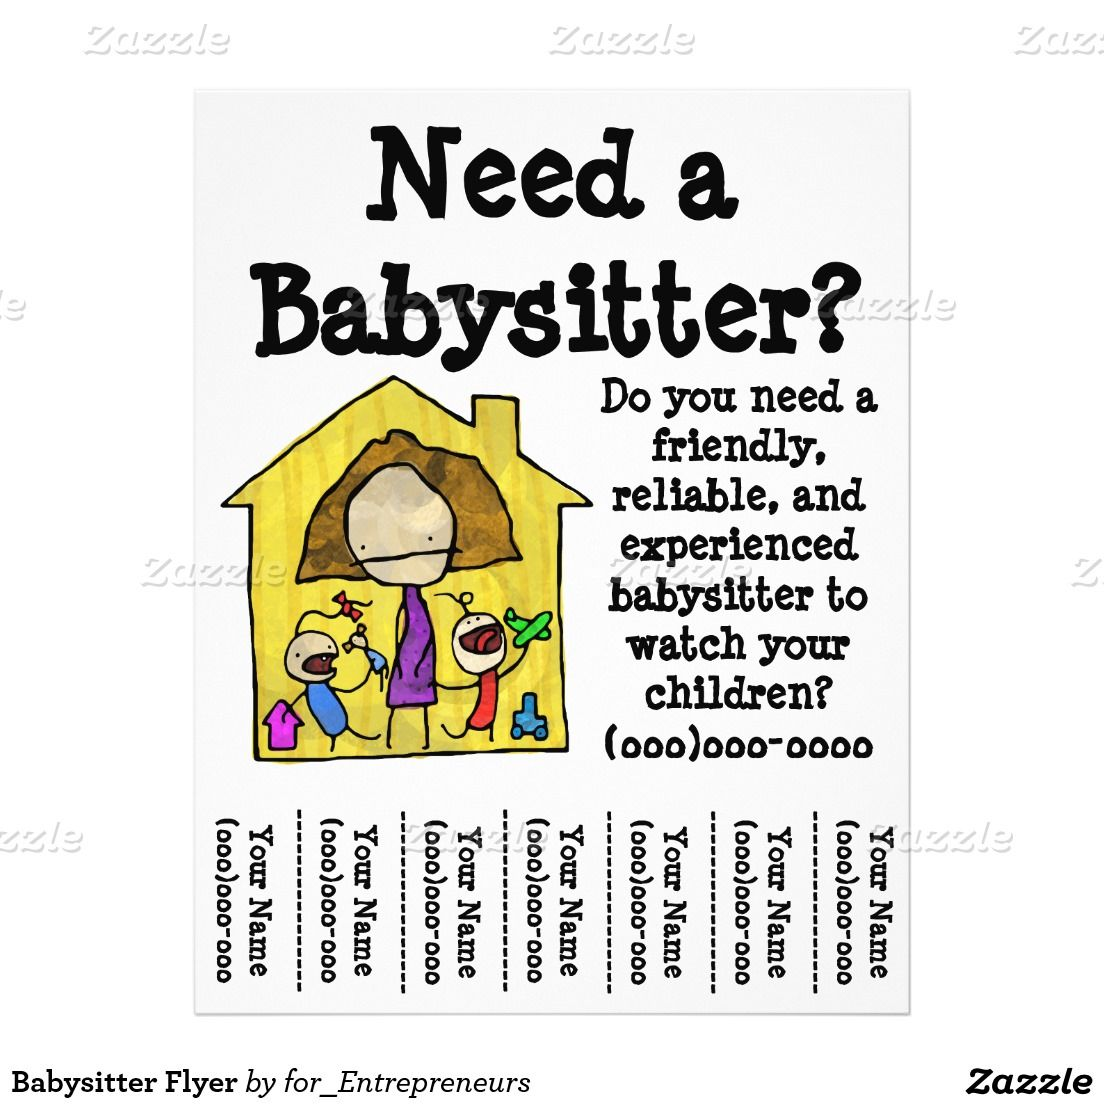 Babysitter Flyer | Pinterest